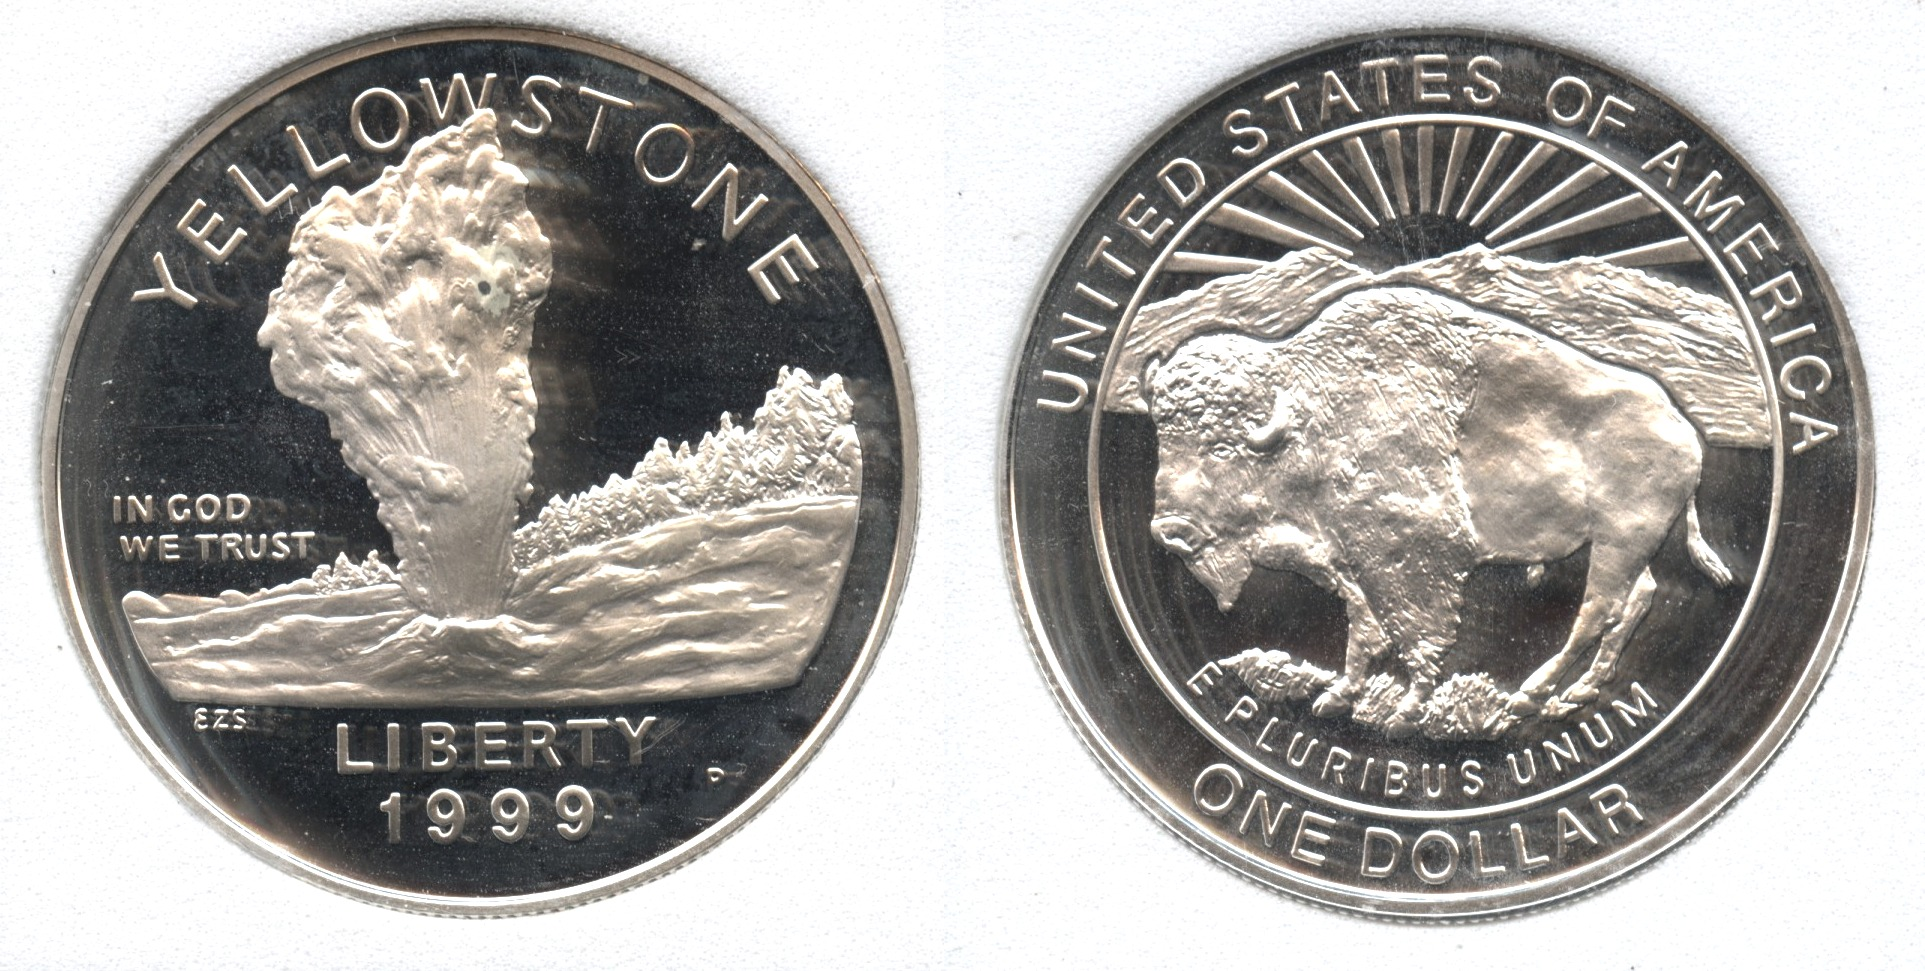 1999-P Yellowstone National Park Commemorative Silver Dollar SGS Proof-70